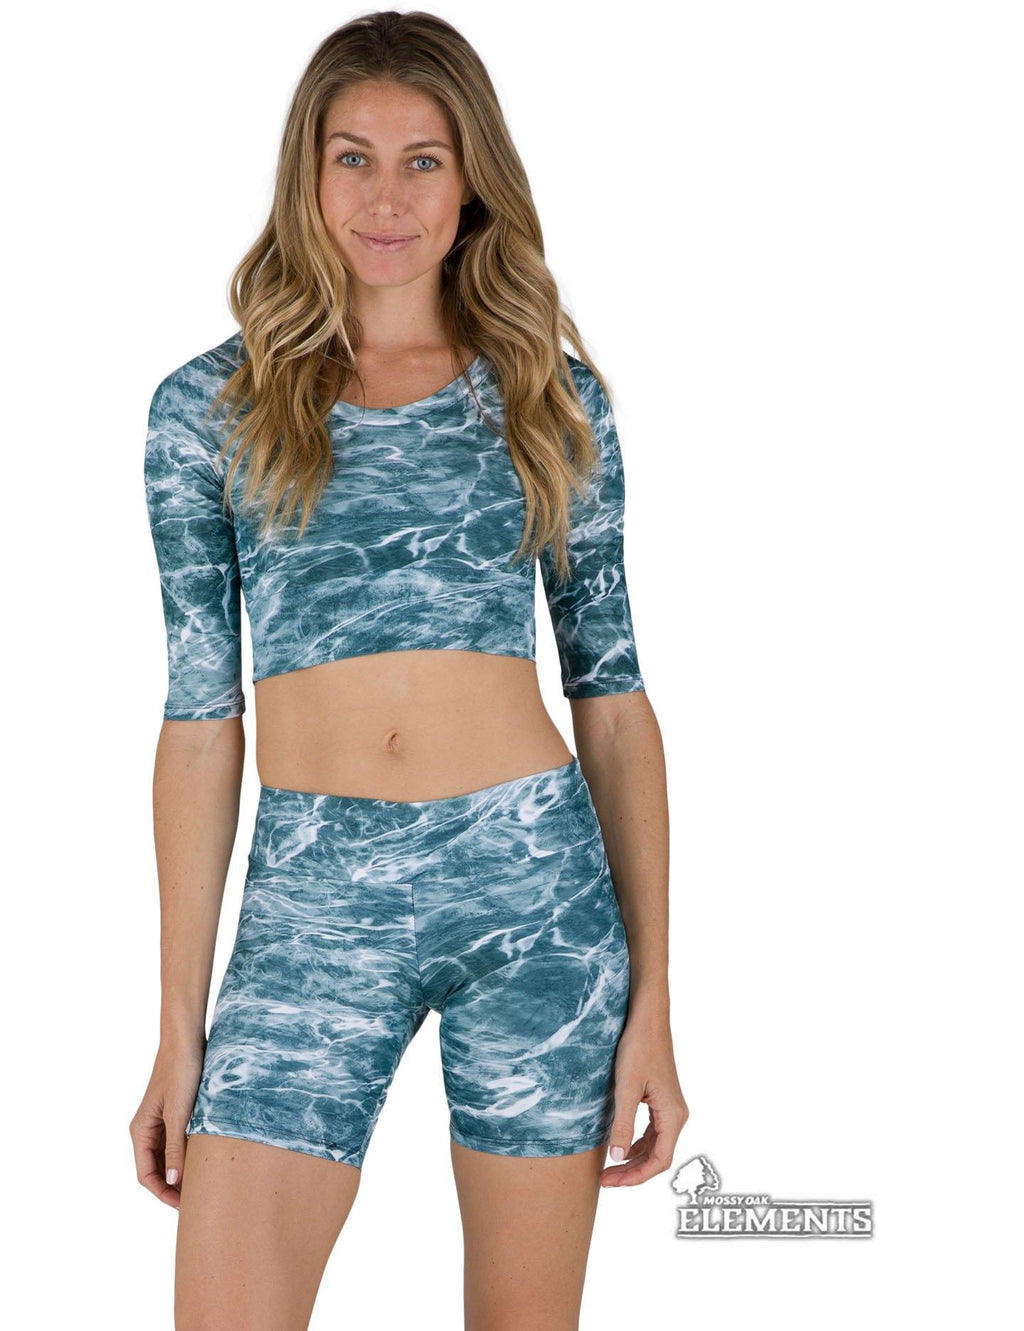 Apsara Cropped Top, Mossy Oak Elements Spindrift